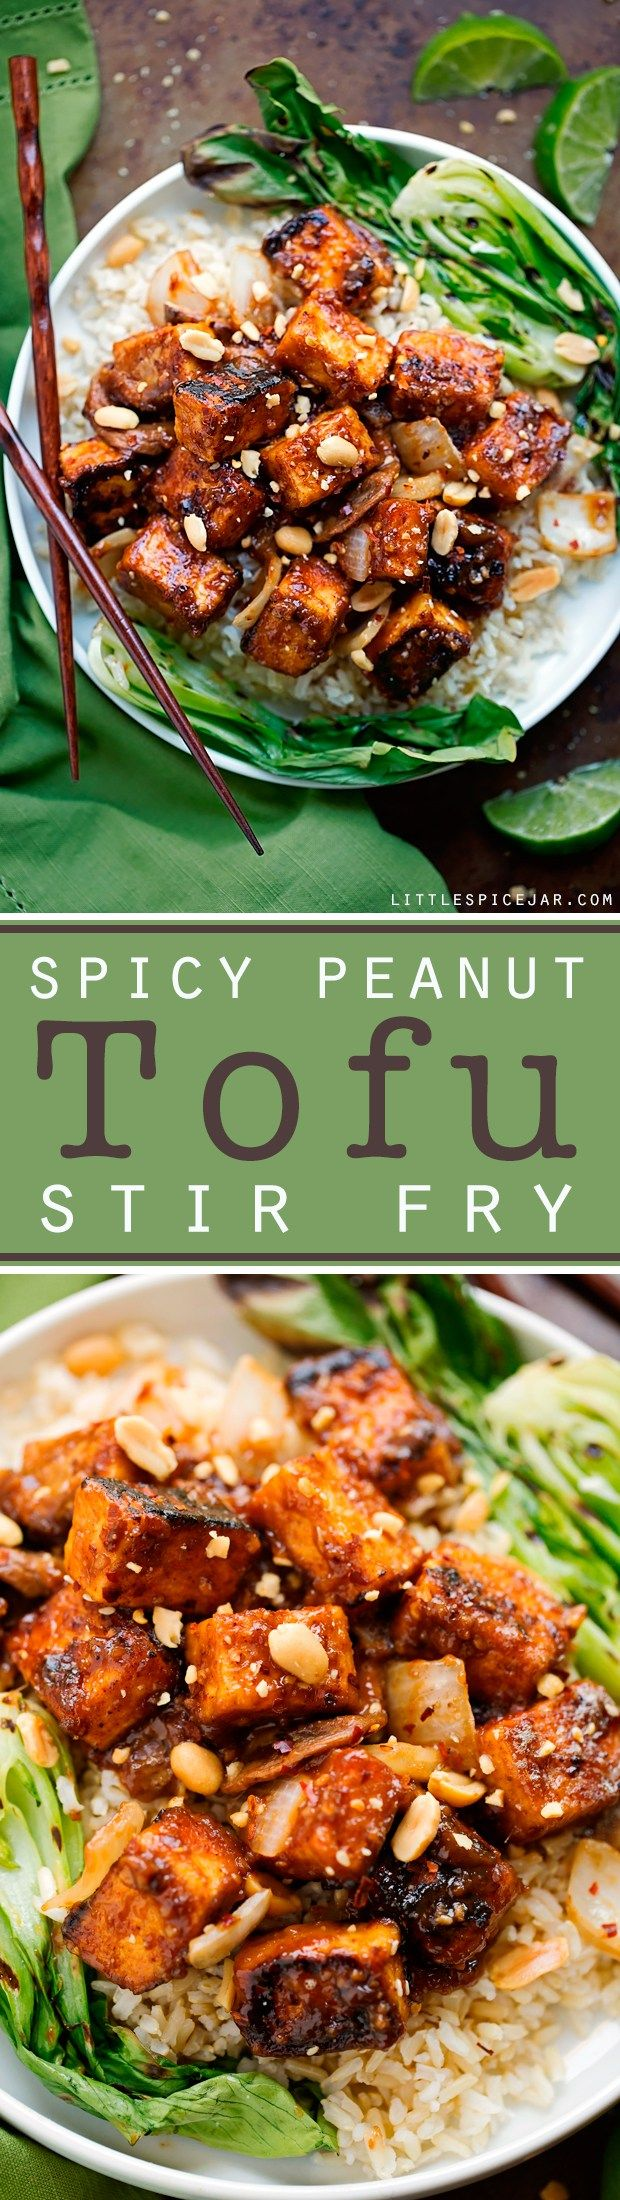 Spicy Peanut Tofu Stir Fry - Loaded with flavor and it's vegetarian/vegan/gluten�